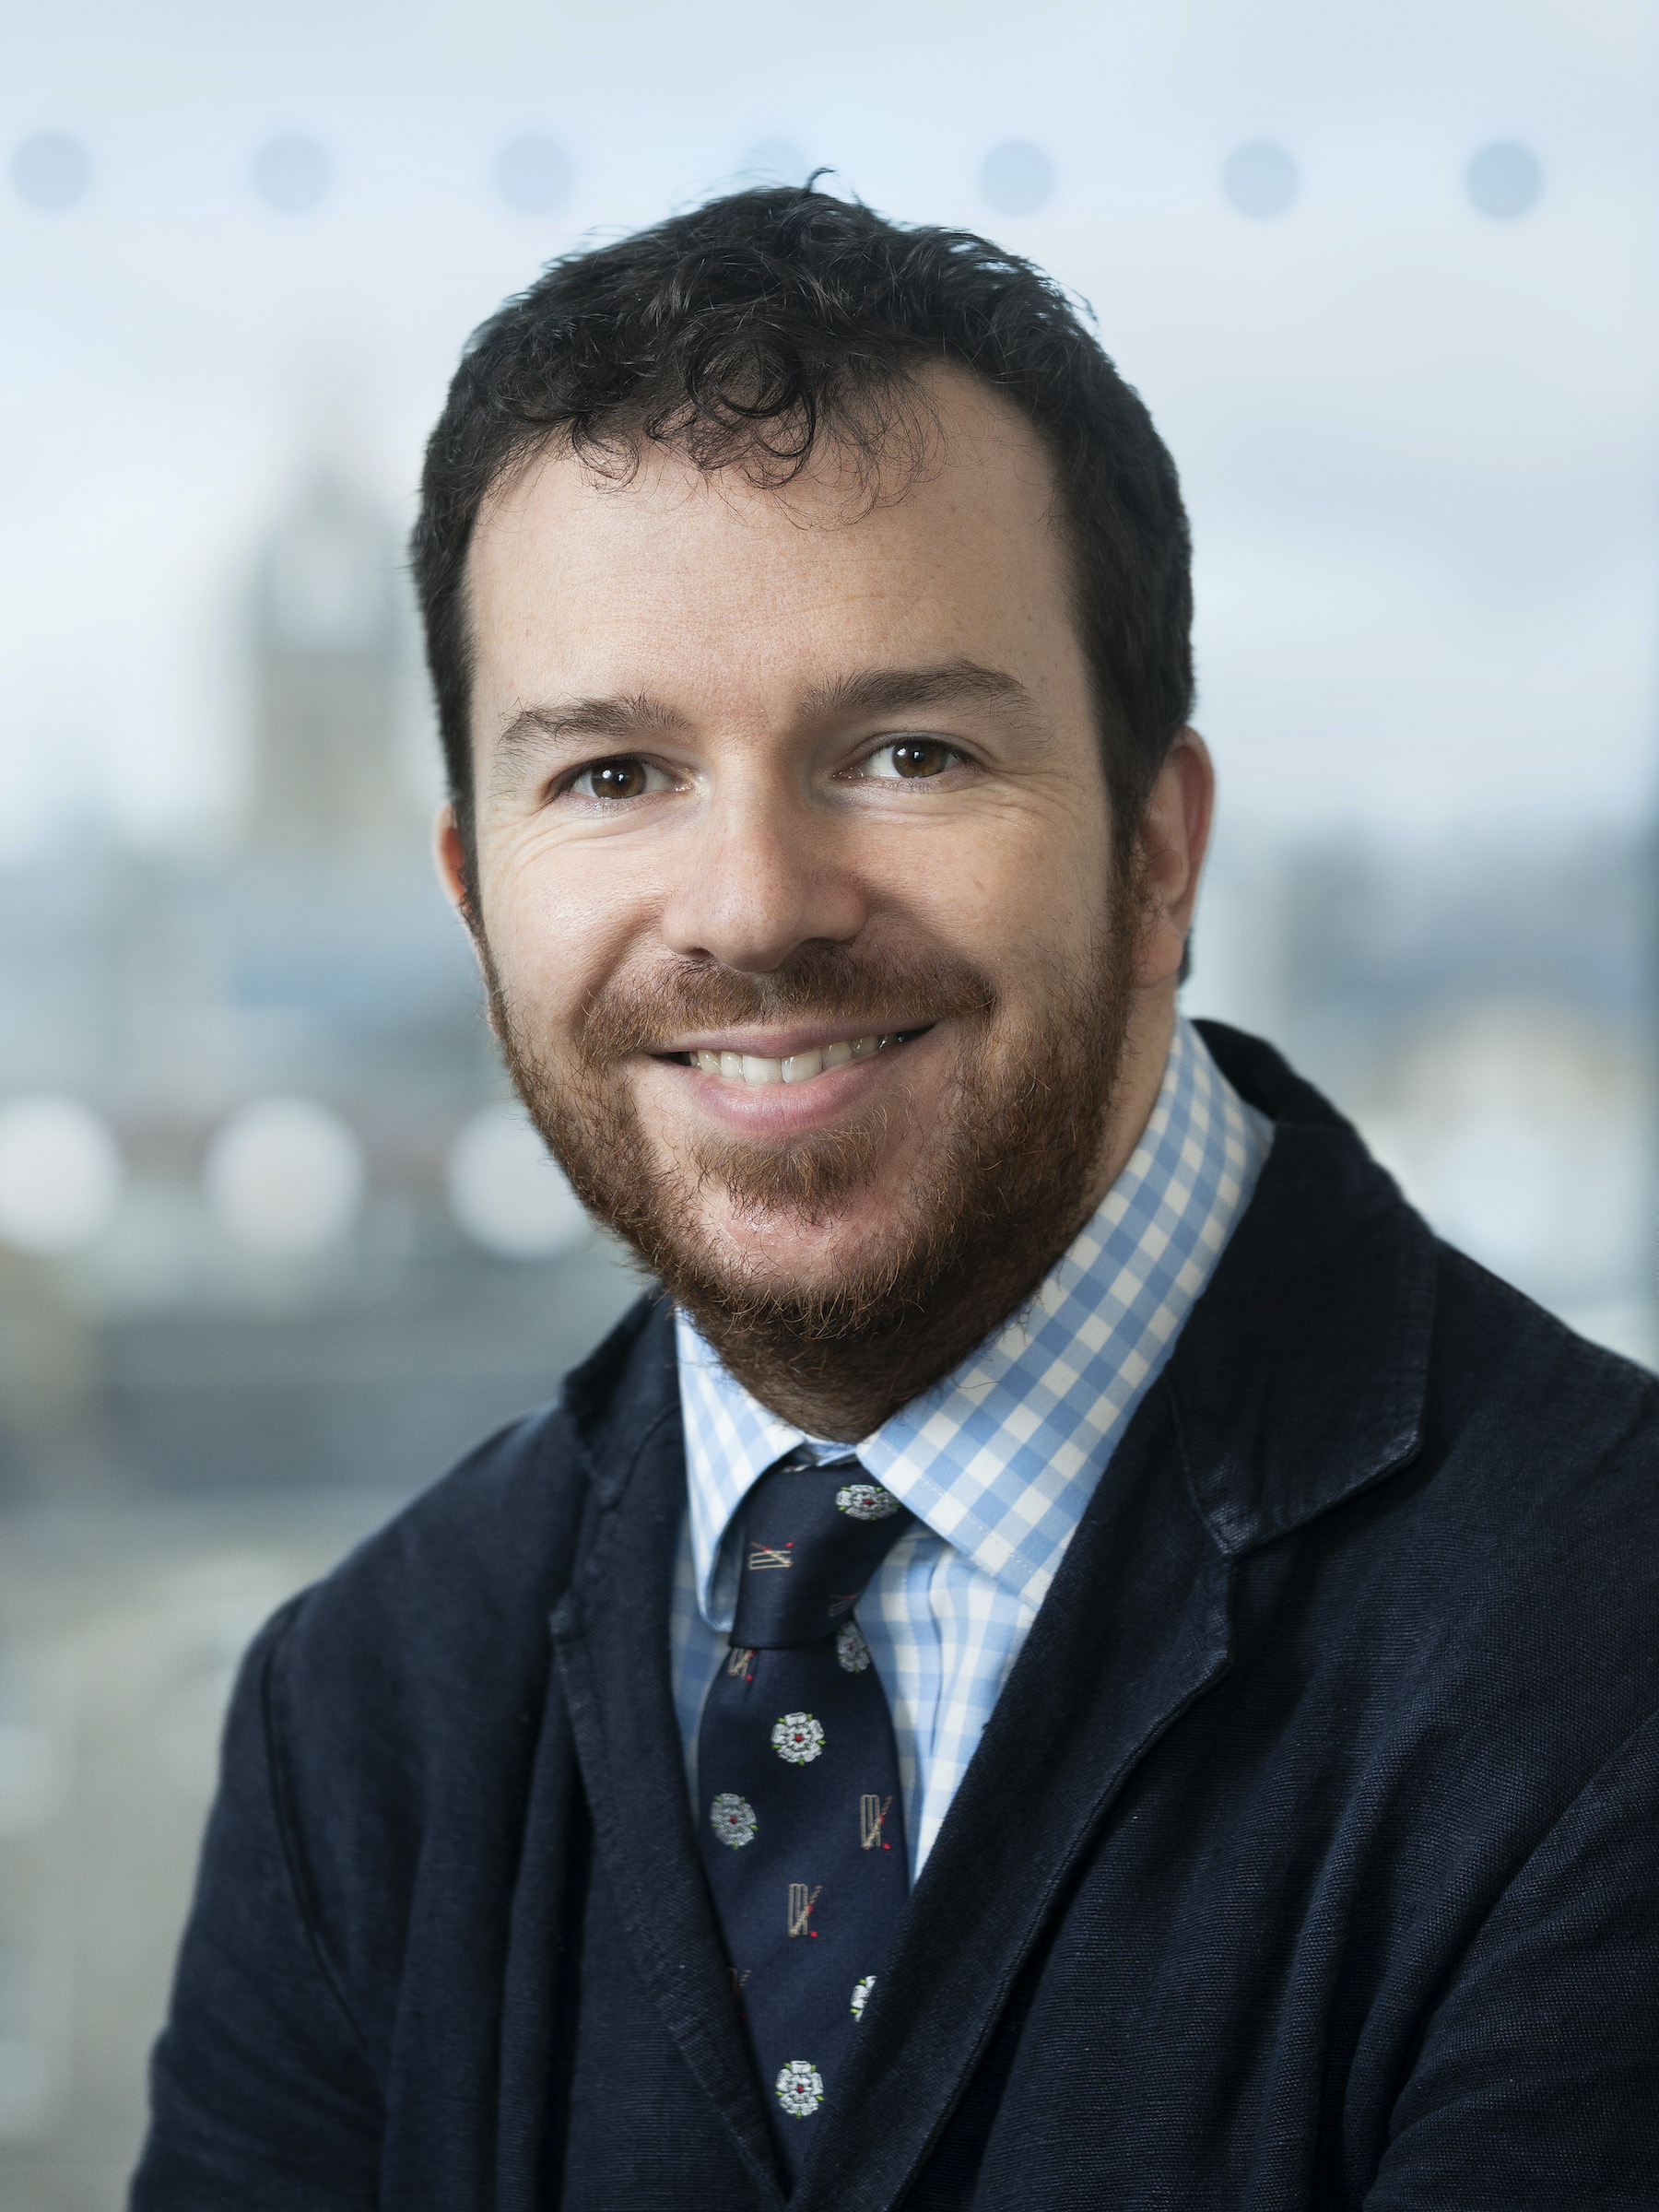 New SDRC Executive Committee Member: Dr Tom Russ